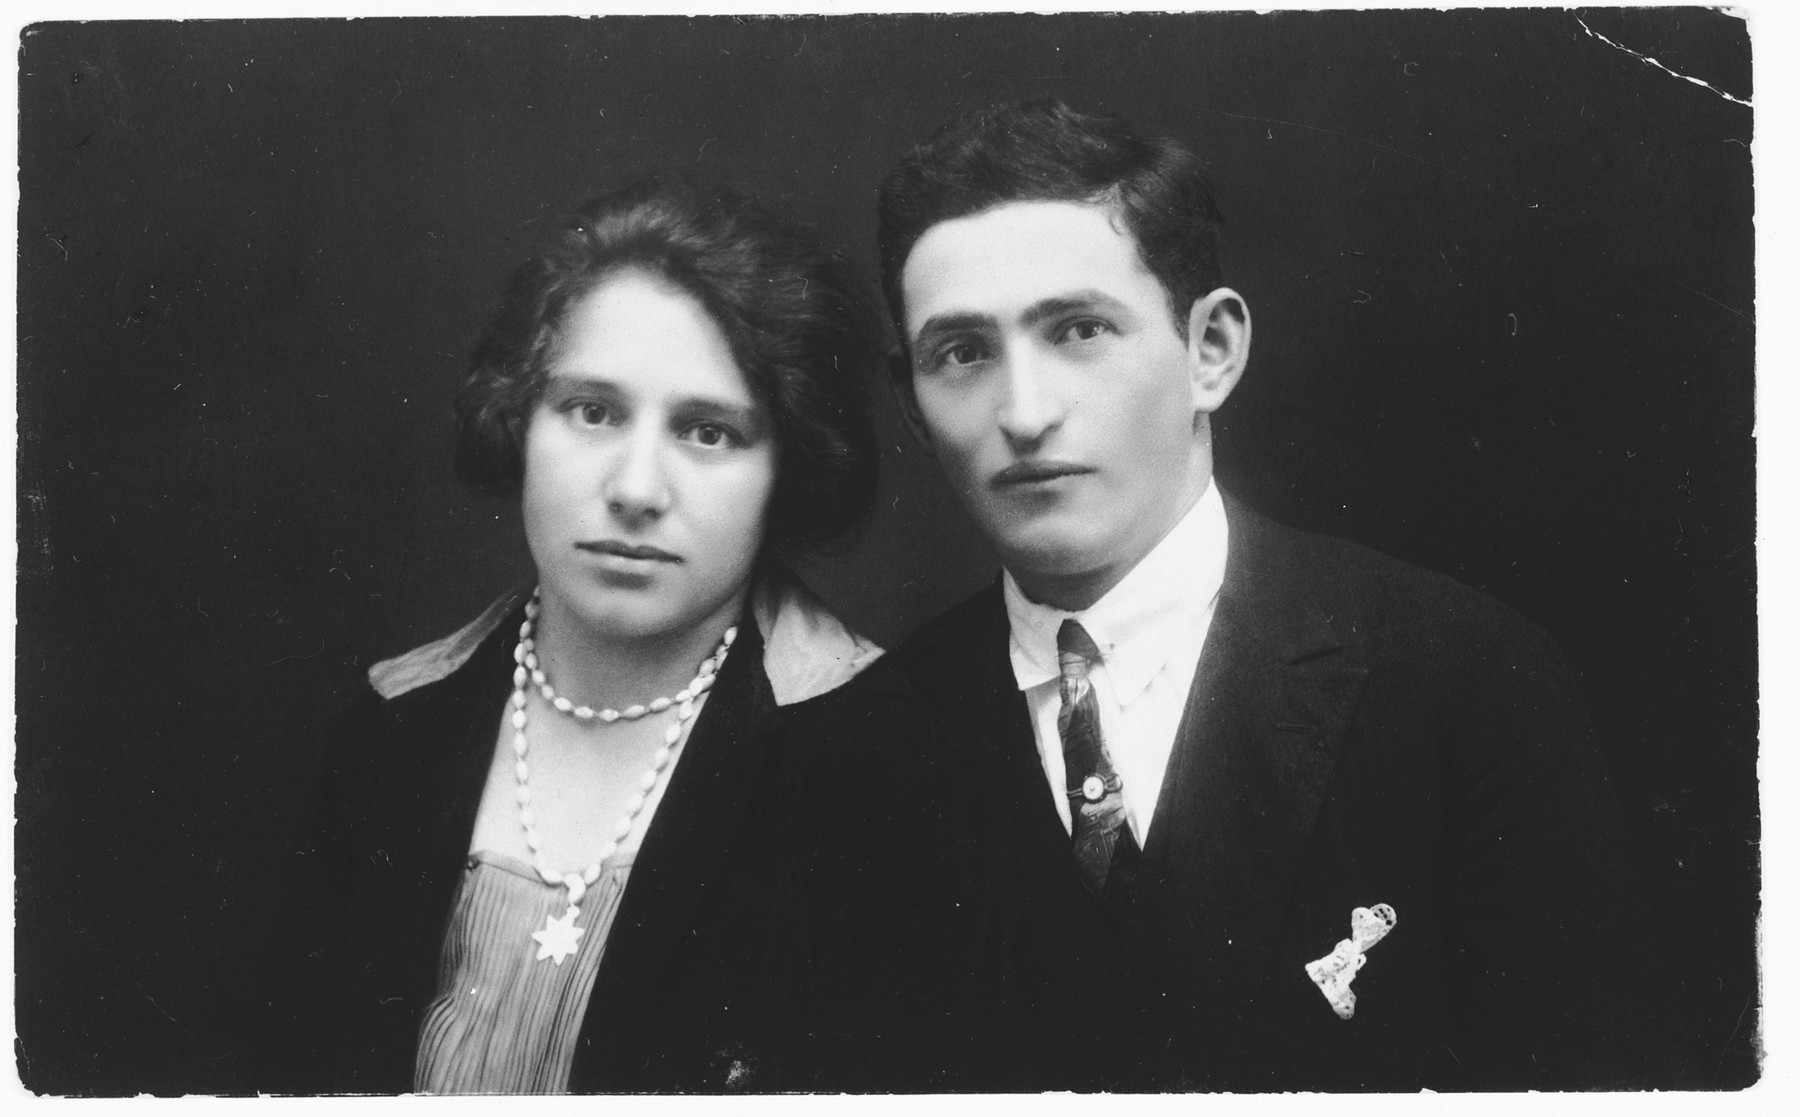 Portrait [probably an engagement photograph] of Irina Farkas and Eugene Berkovits.